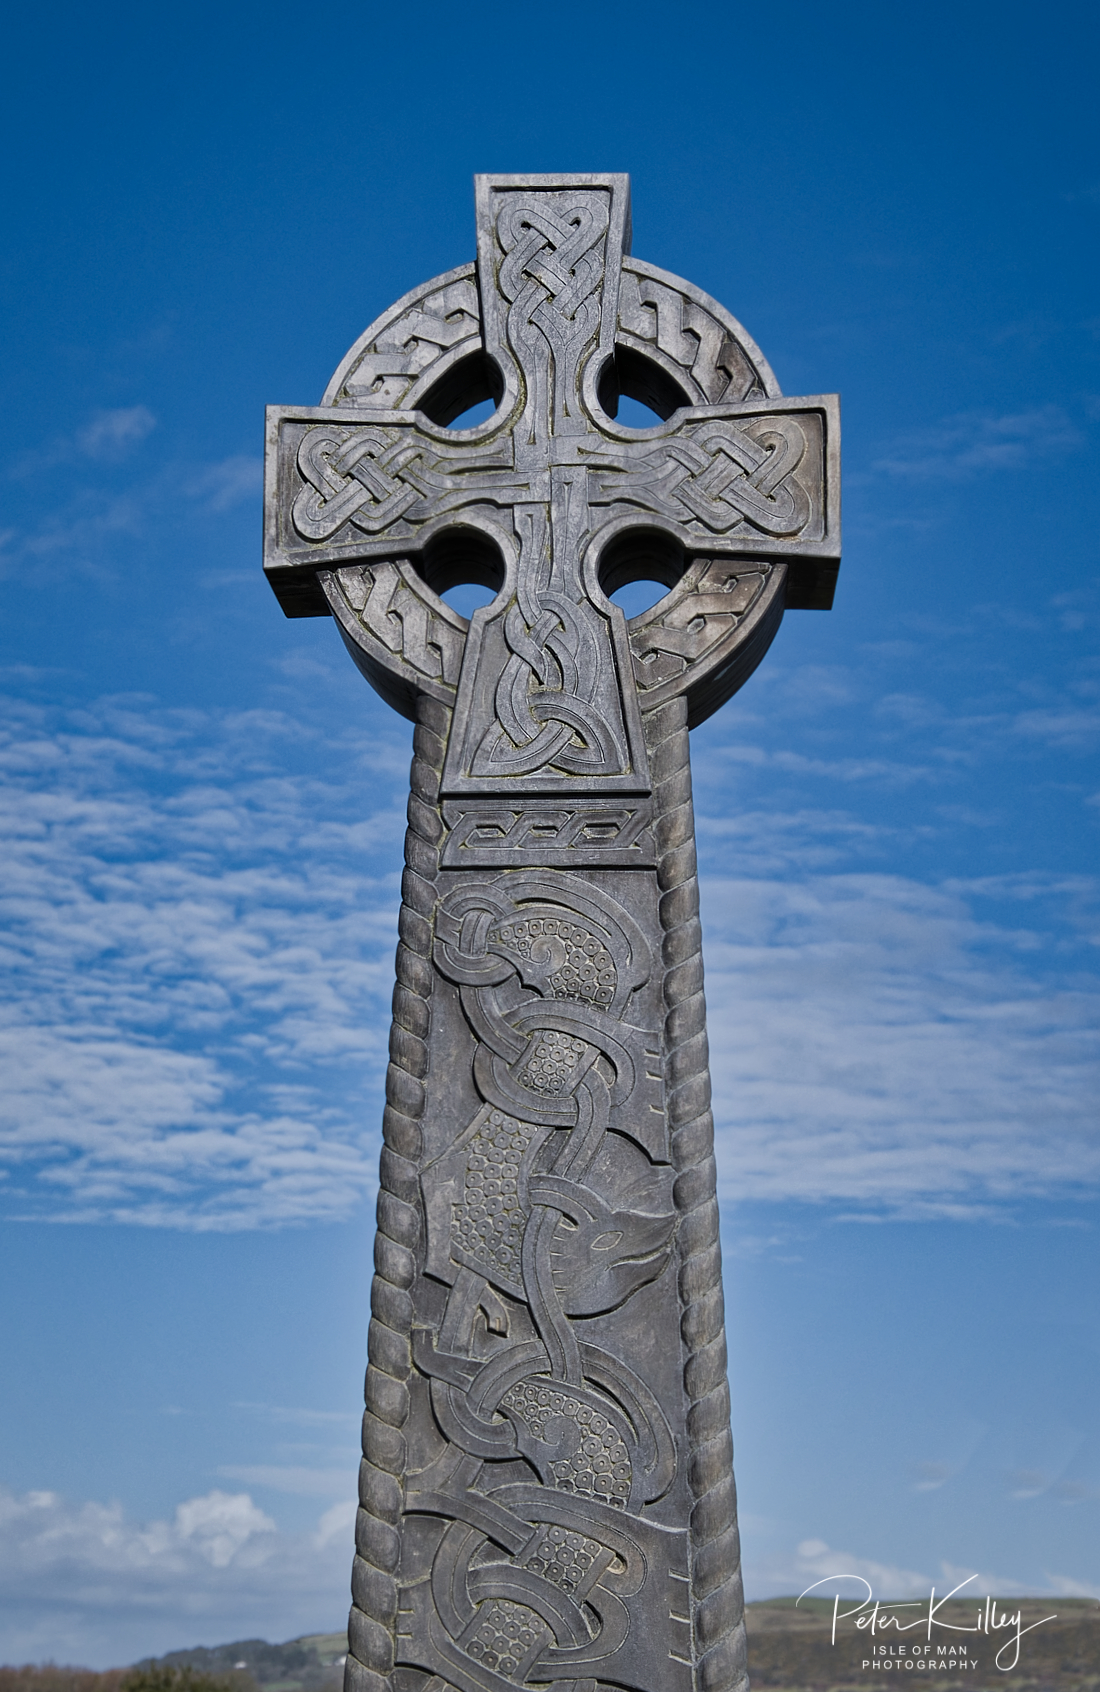 Manx Celtic Cross - © Peter Killey - www.manxscenes.com